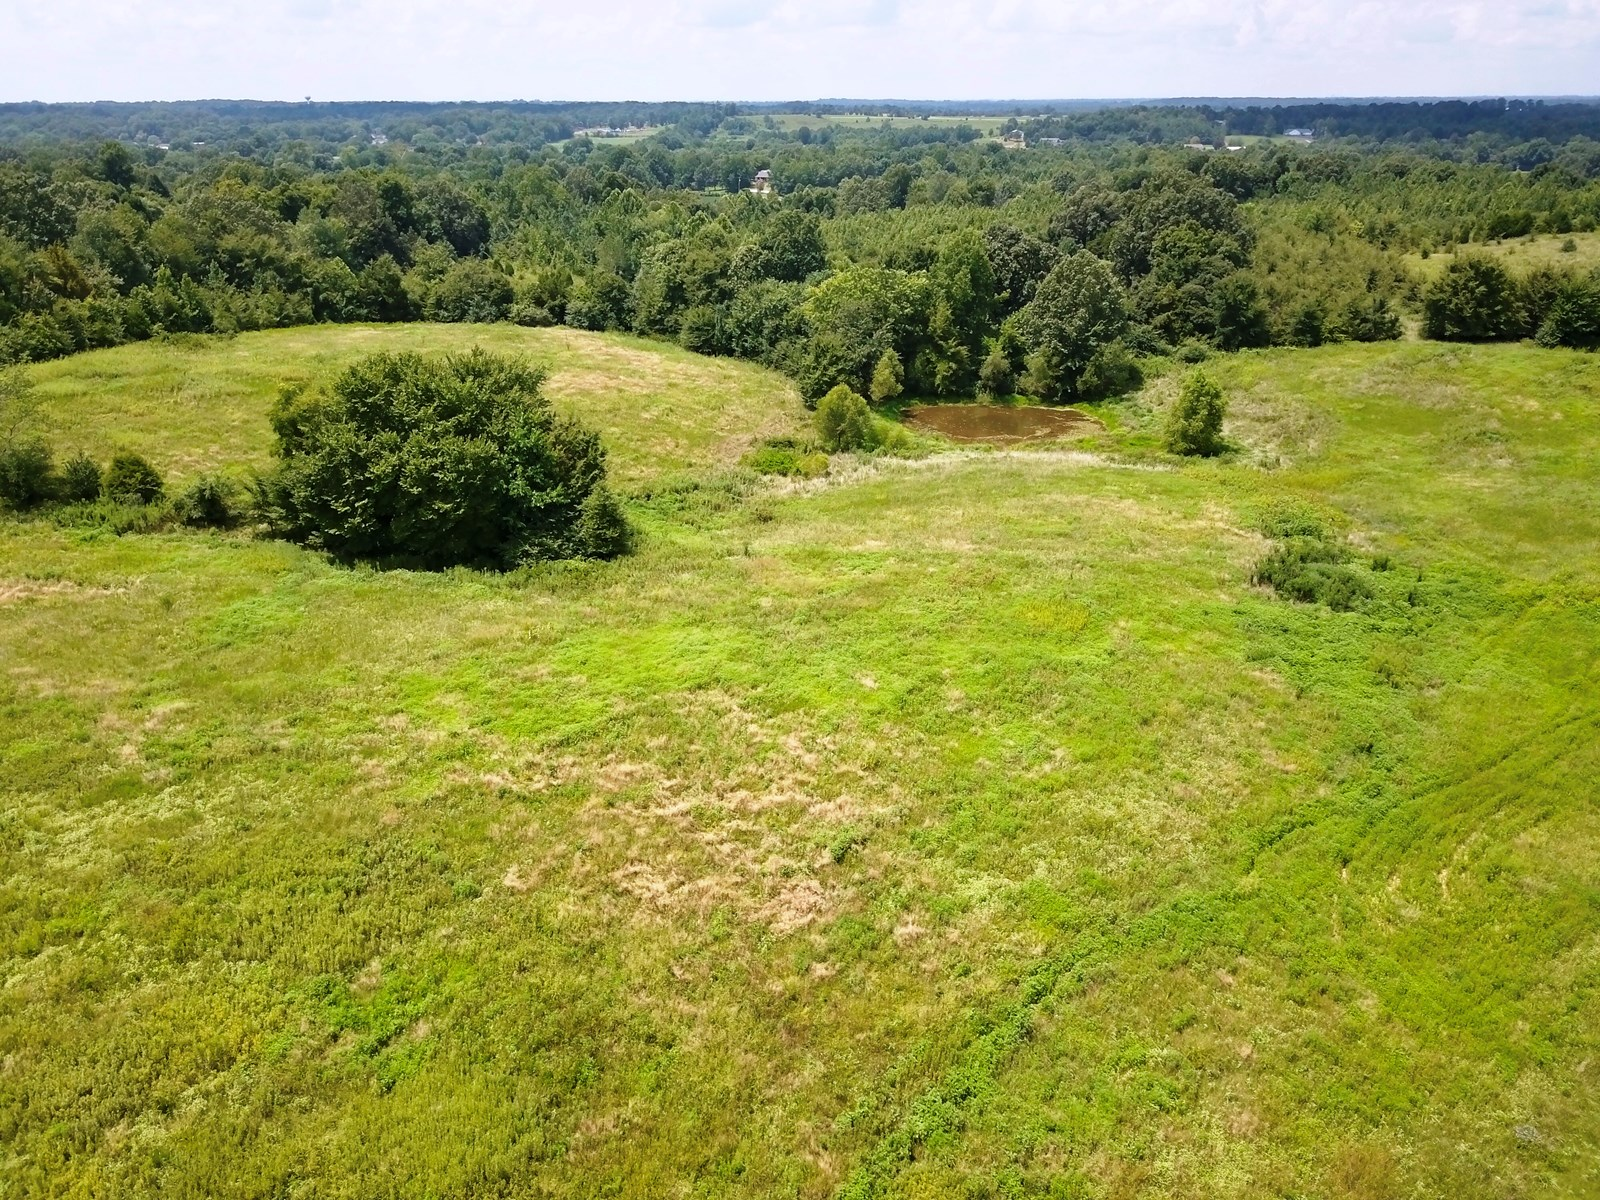 Recreational or Farm Ground, Pasture Land For Sale - West TN